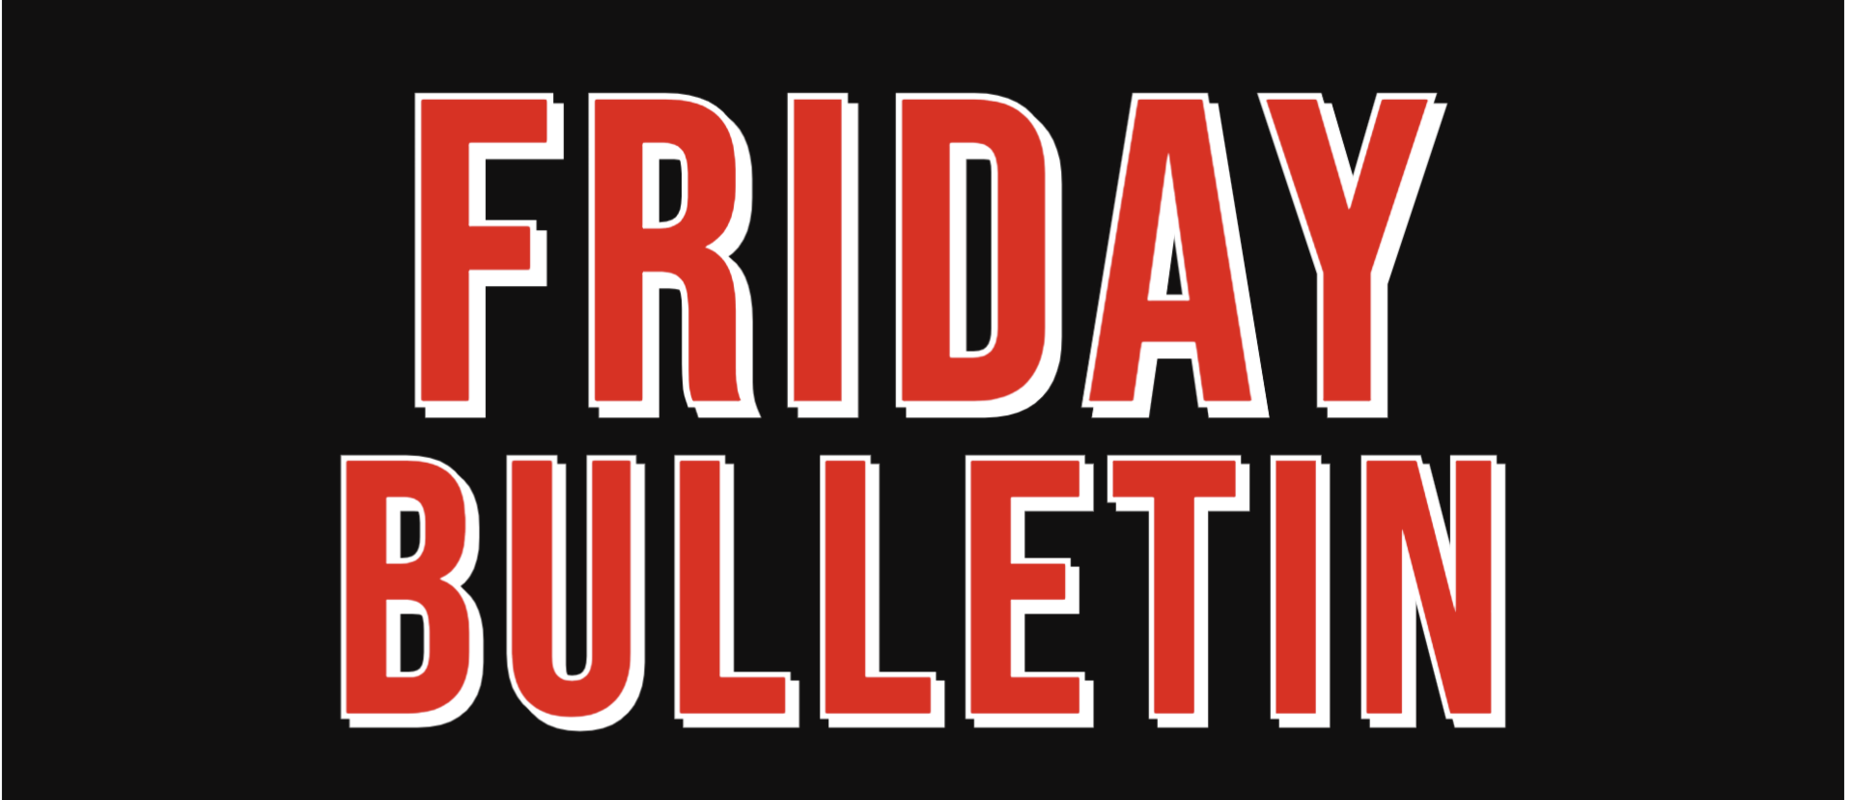 Link to Friday Bulletin Video